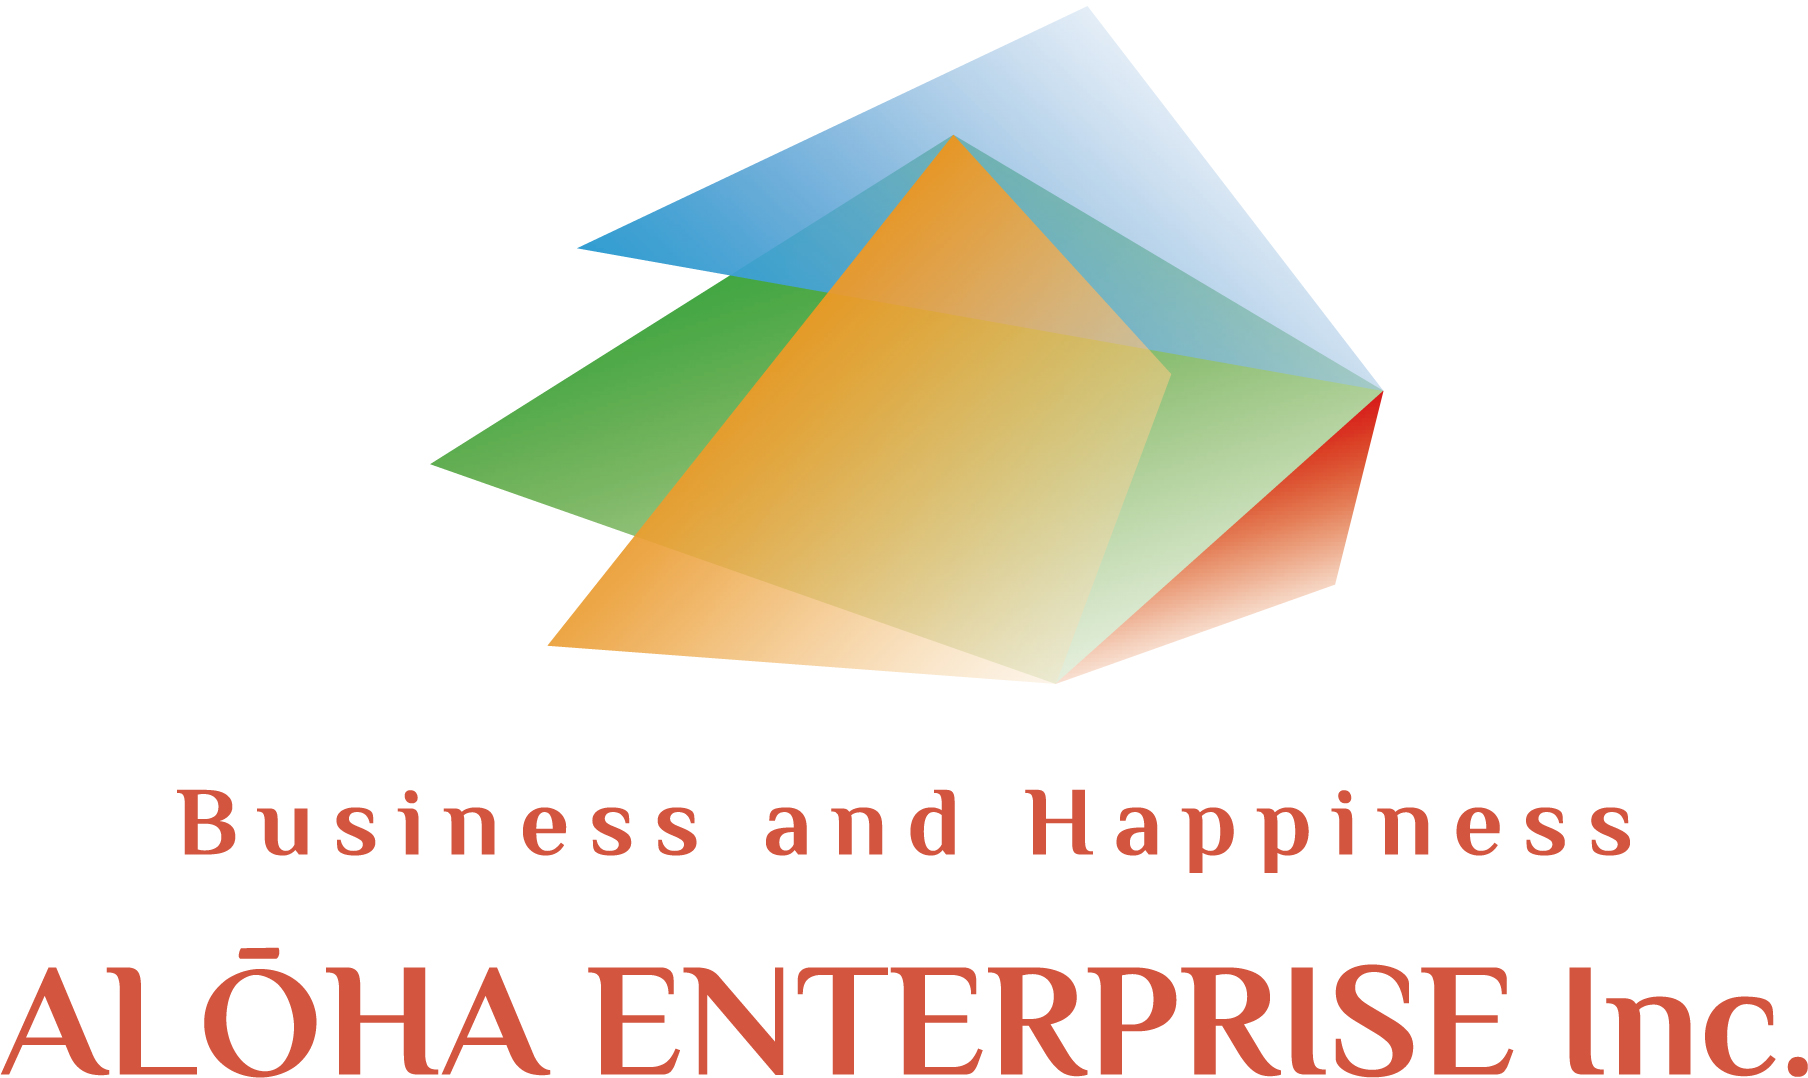 ALŌHA ENTERPRISE Inc. 会社ロゴ